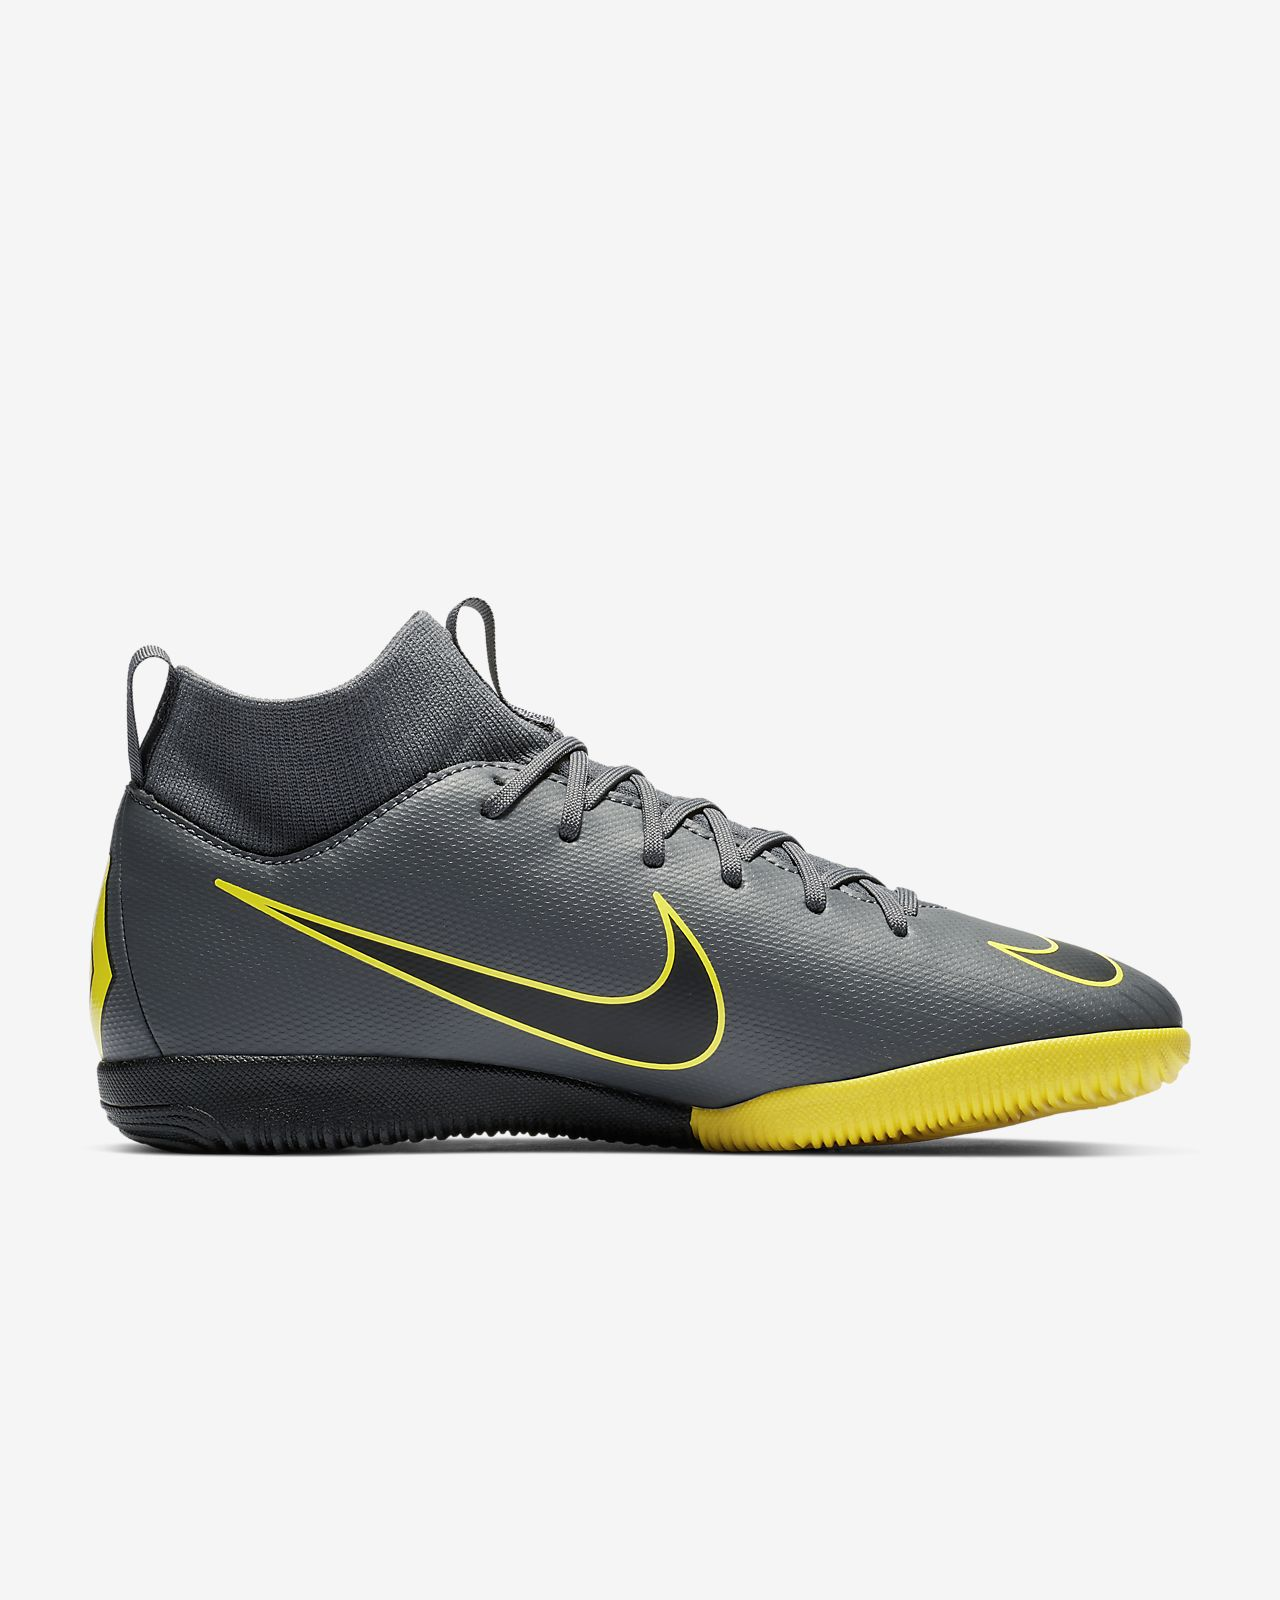 8dfed5c8fb543 ... Nike Jr. SuperflyX 6 Academy IC Younger Older Kids  Indoor Court  Football